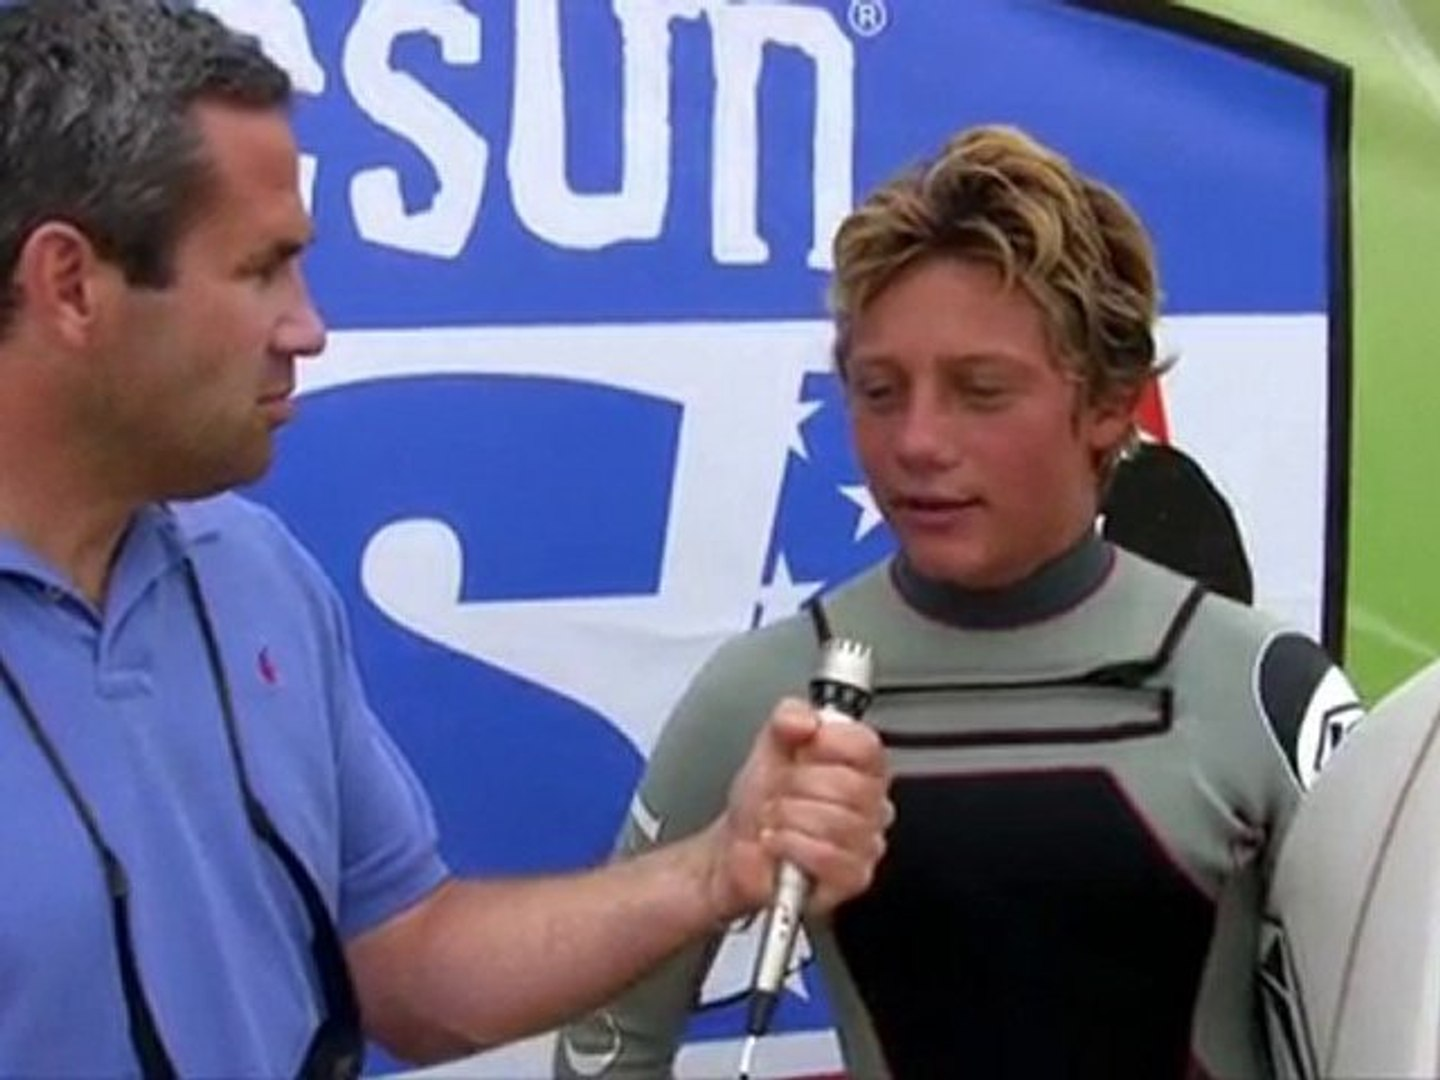 Parker Coffin, USA Surf Team, on his secrets to success